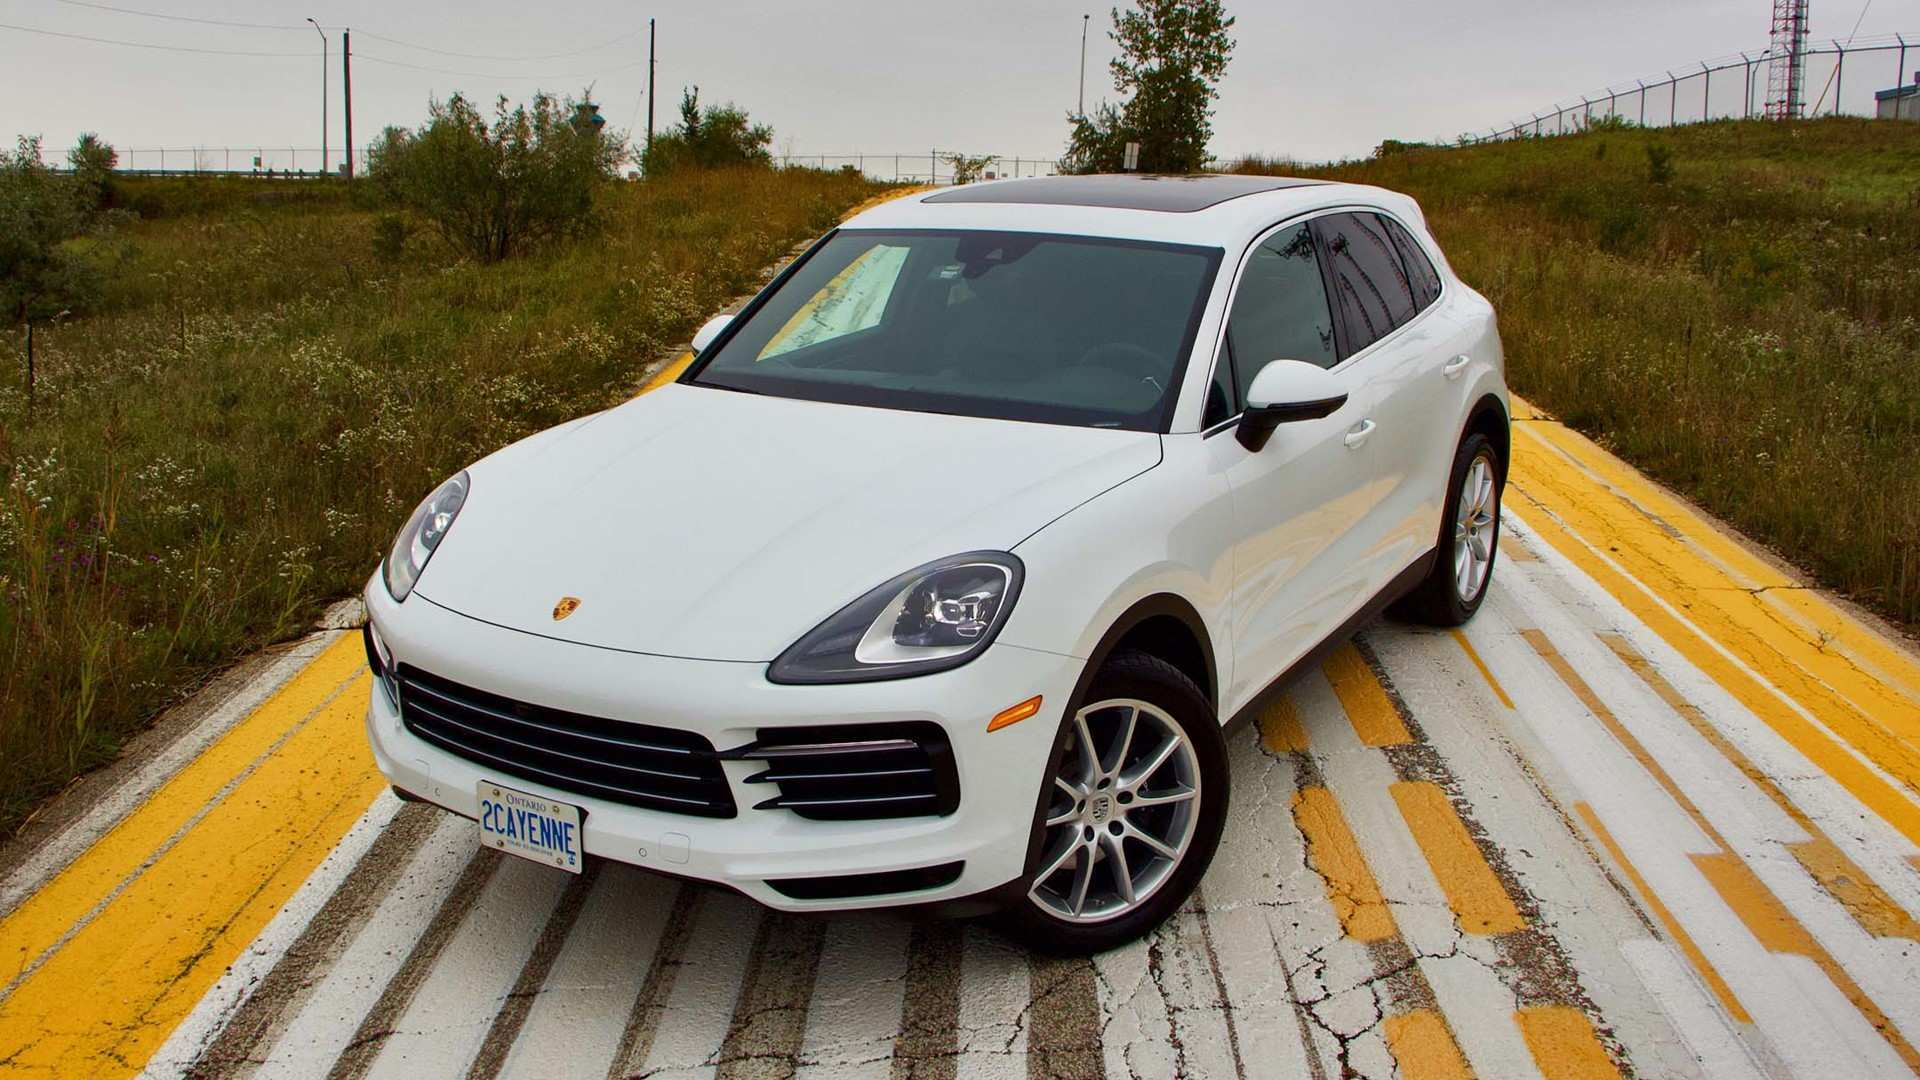 62 Best 2019 Porsche Cayenne Model Engine